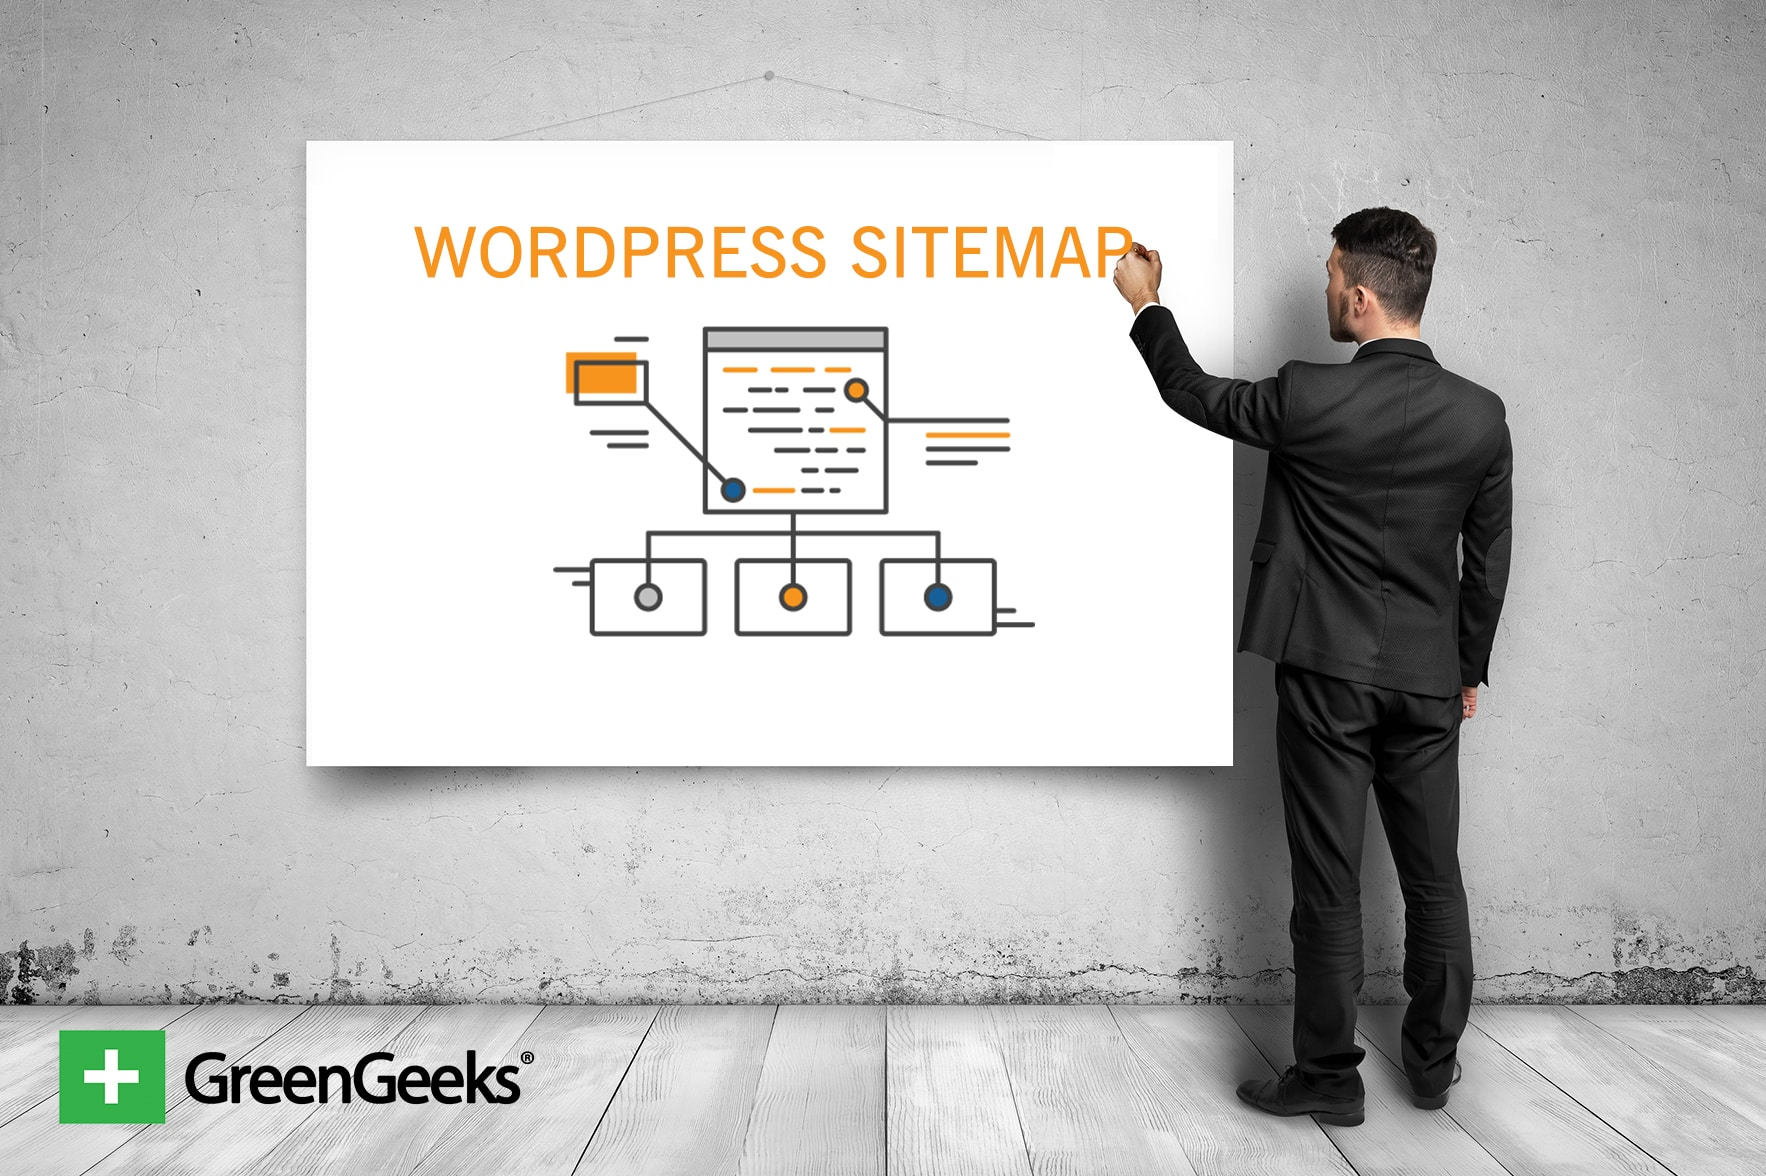 How To Set Up A WordPress Sitemap And Why It's Important